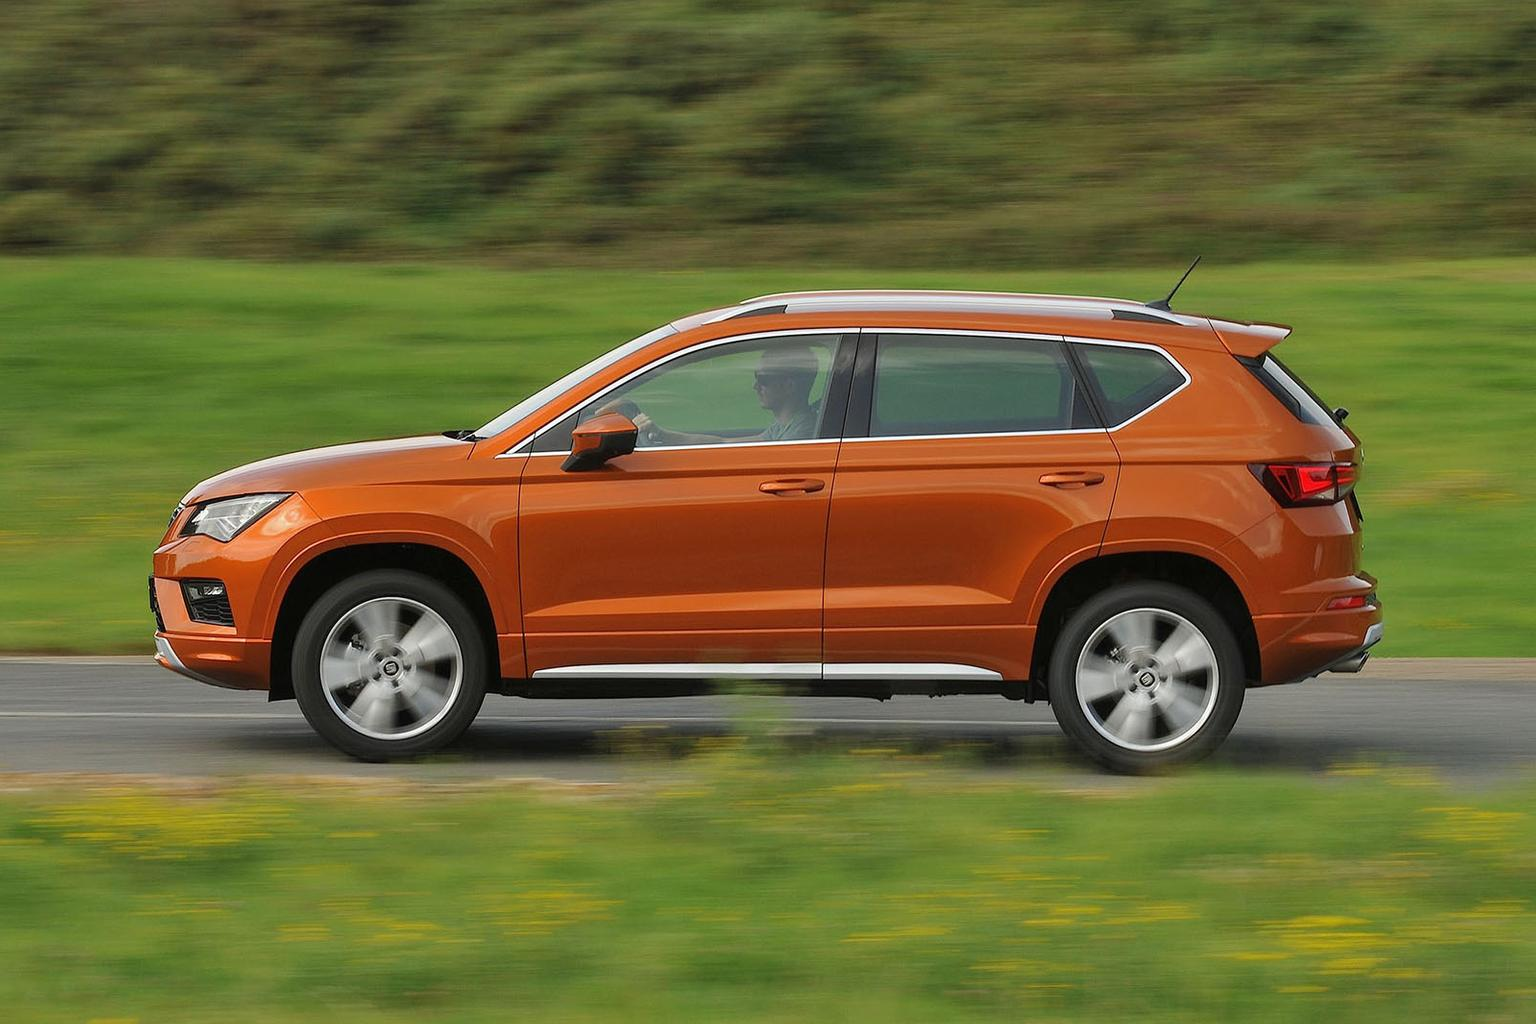 Seat Ateca 1.4 TSI 150 FR review – price, specs and release date